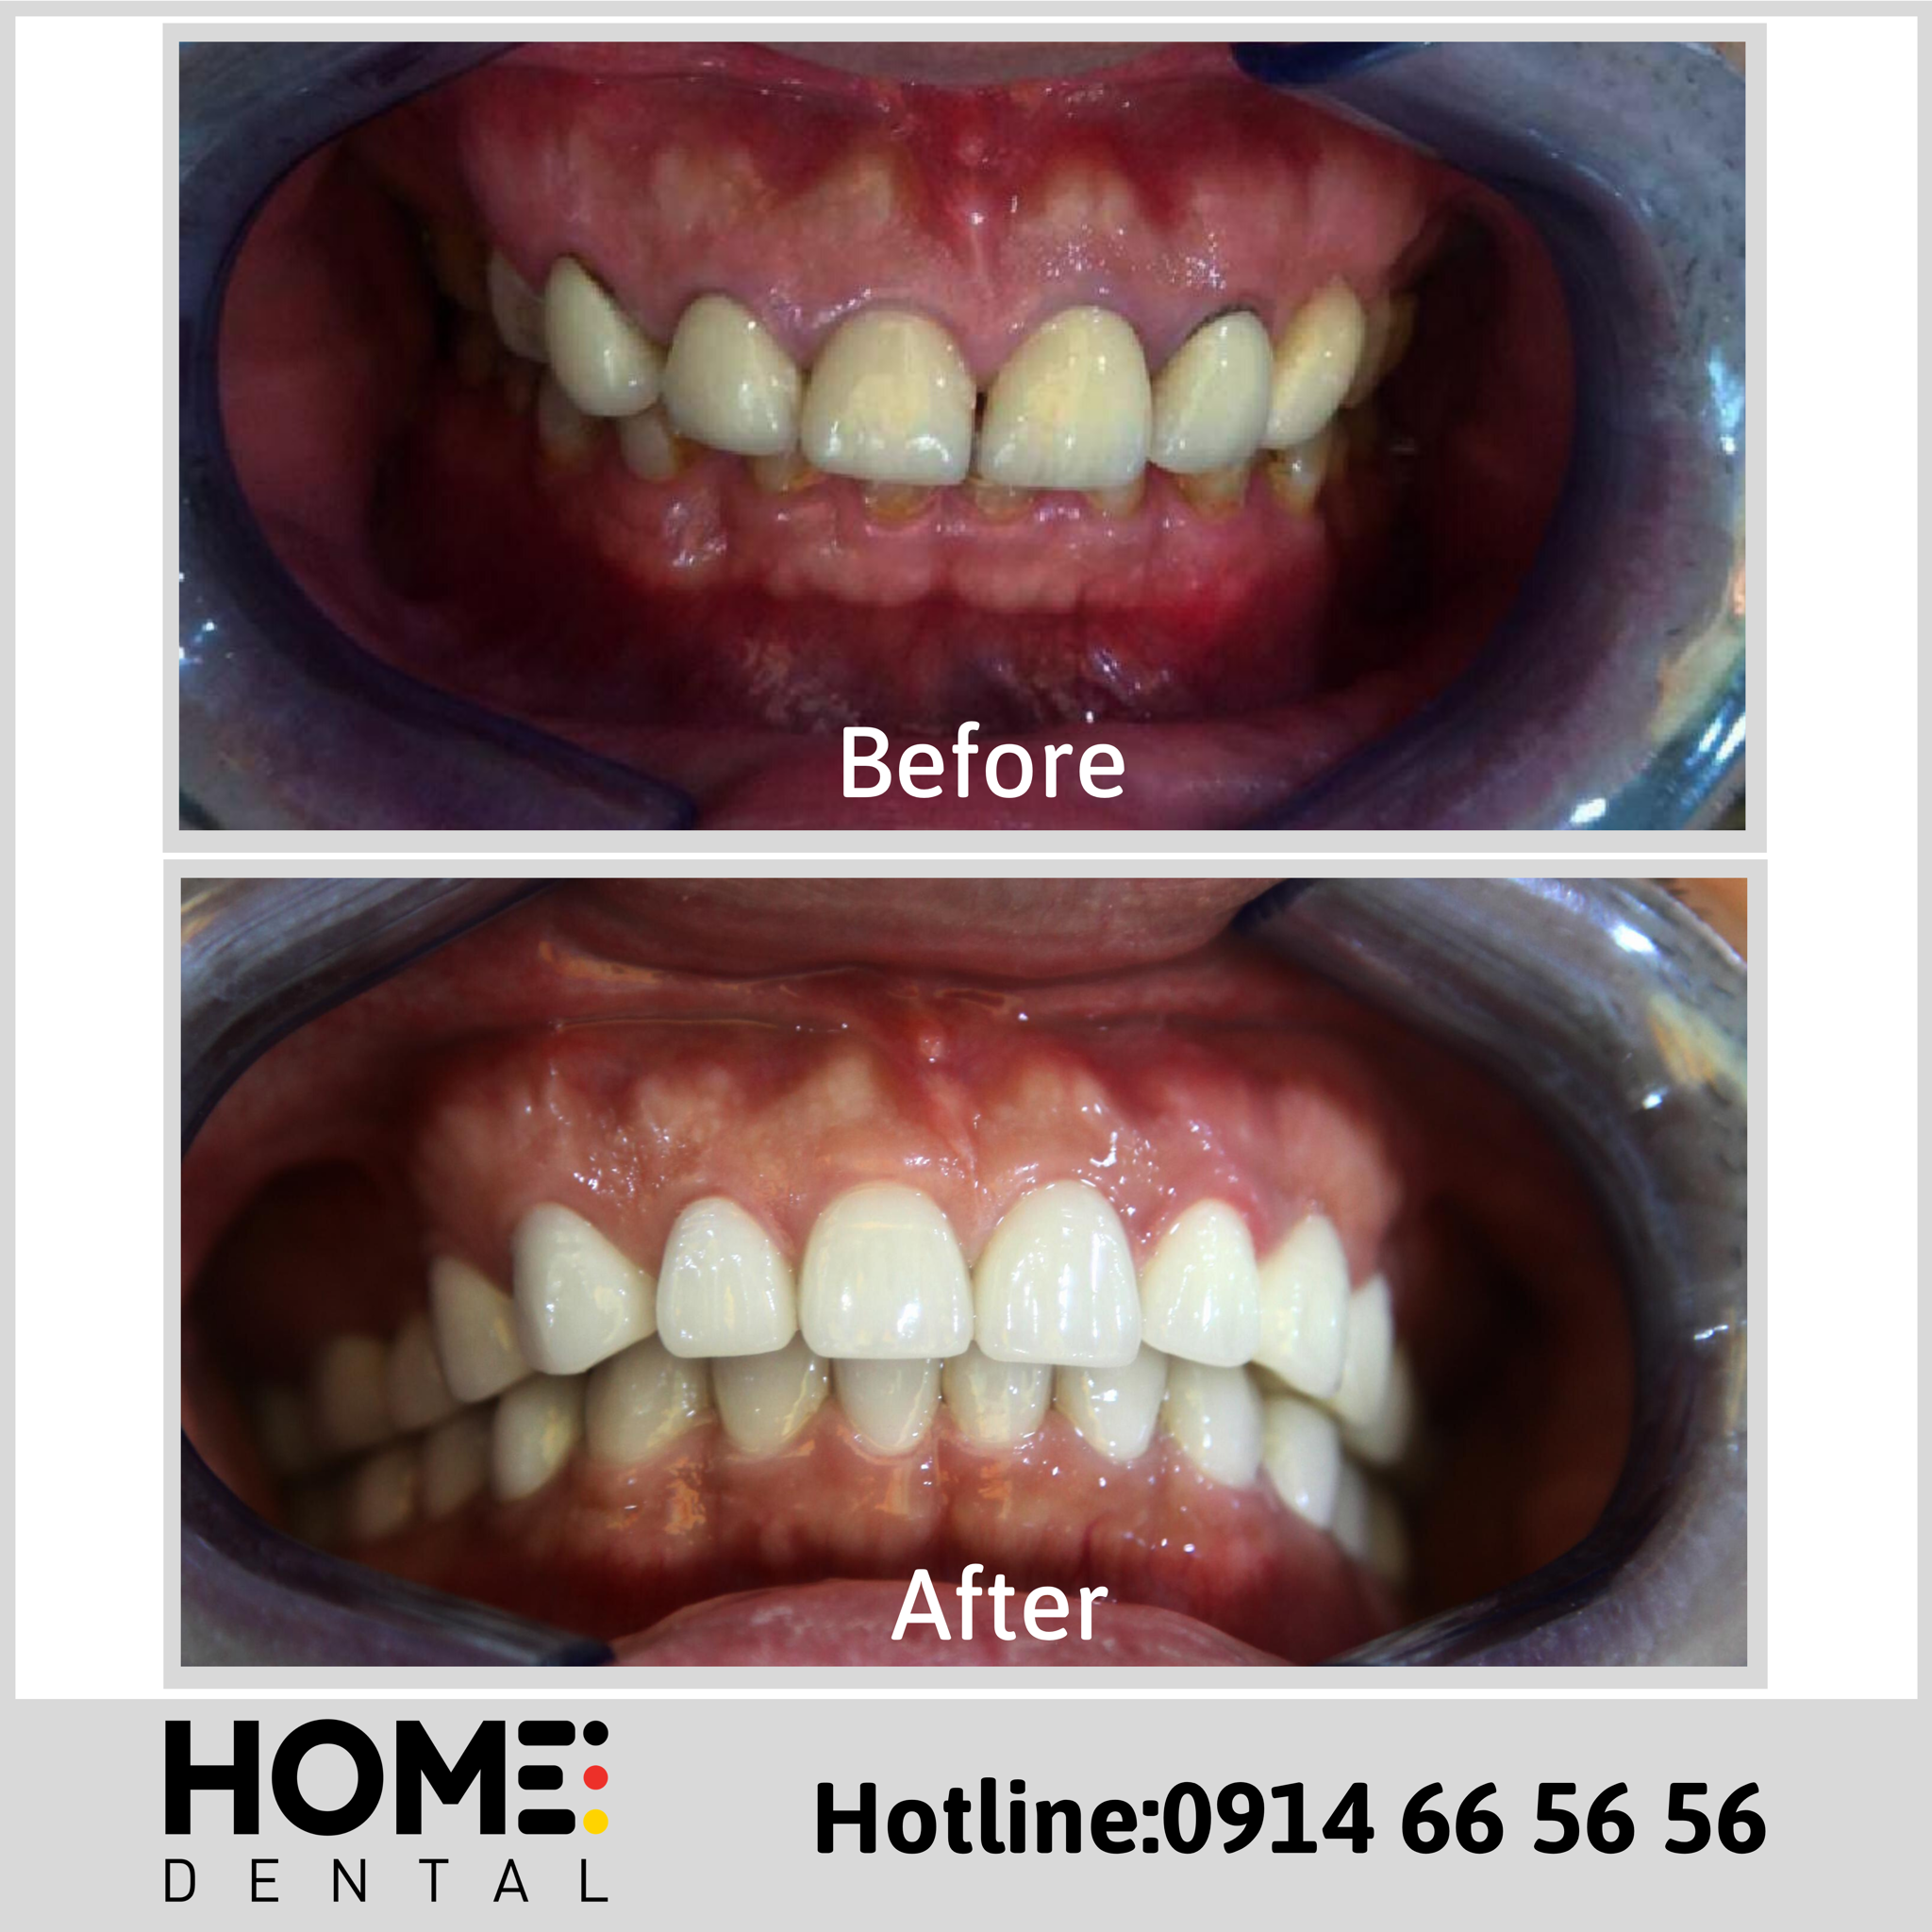 PORCELAIN CROWNS & LAMINATE VENEERS OF MR VUONG TUAN ANH